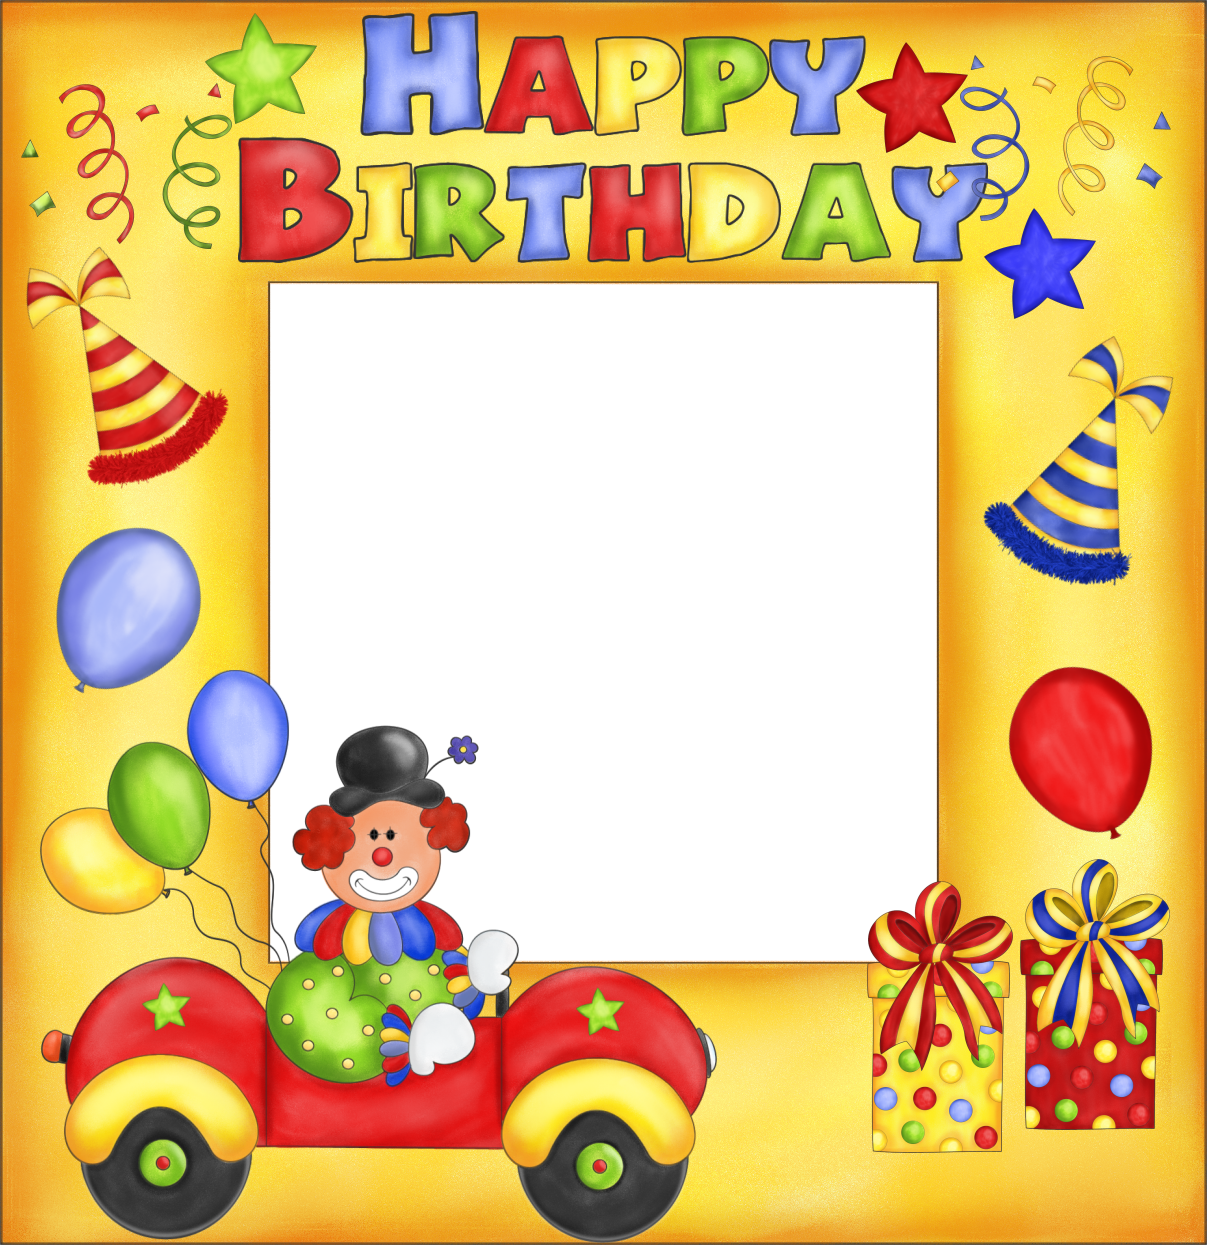 images of myspace babys first birthday clipart – Clown Birthday Cards